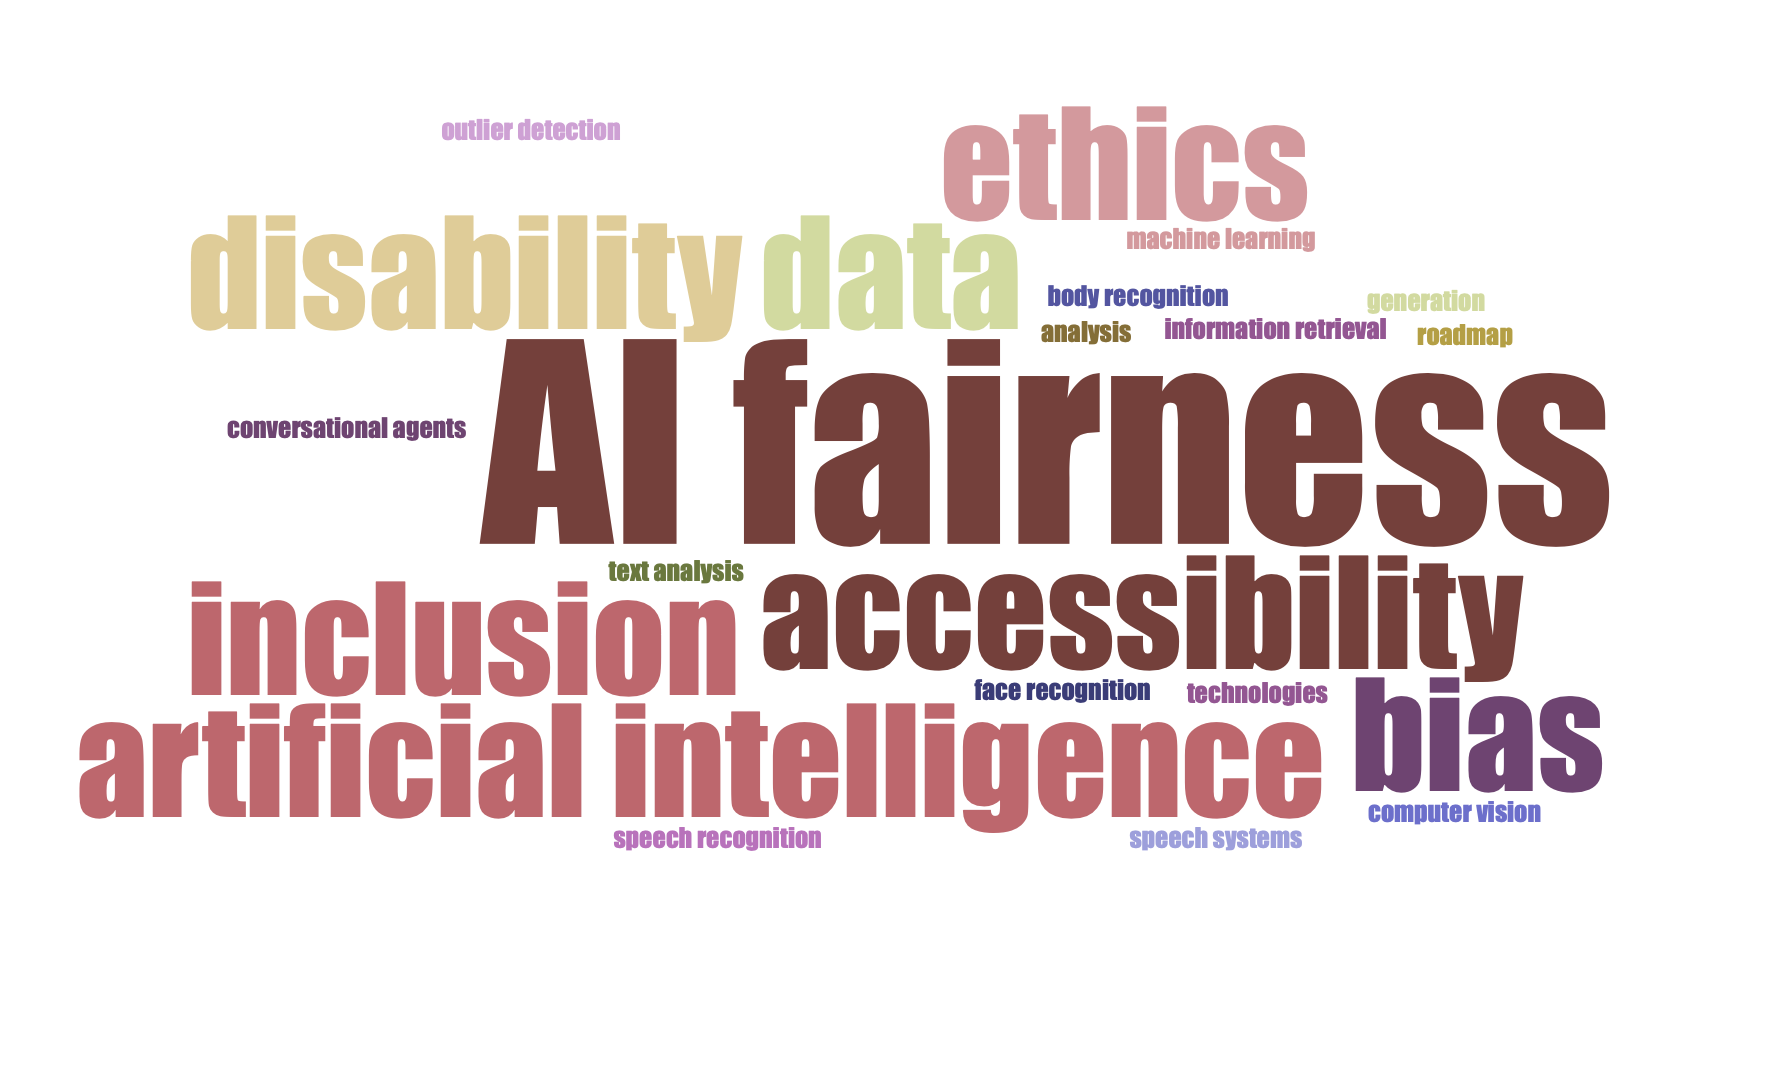 A word cloud composed of words including AI fairness, accessibility, artifical intelligence, inclusion, and bias.